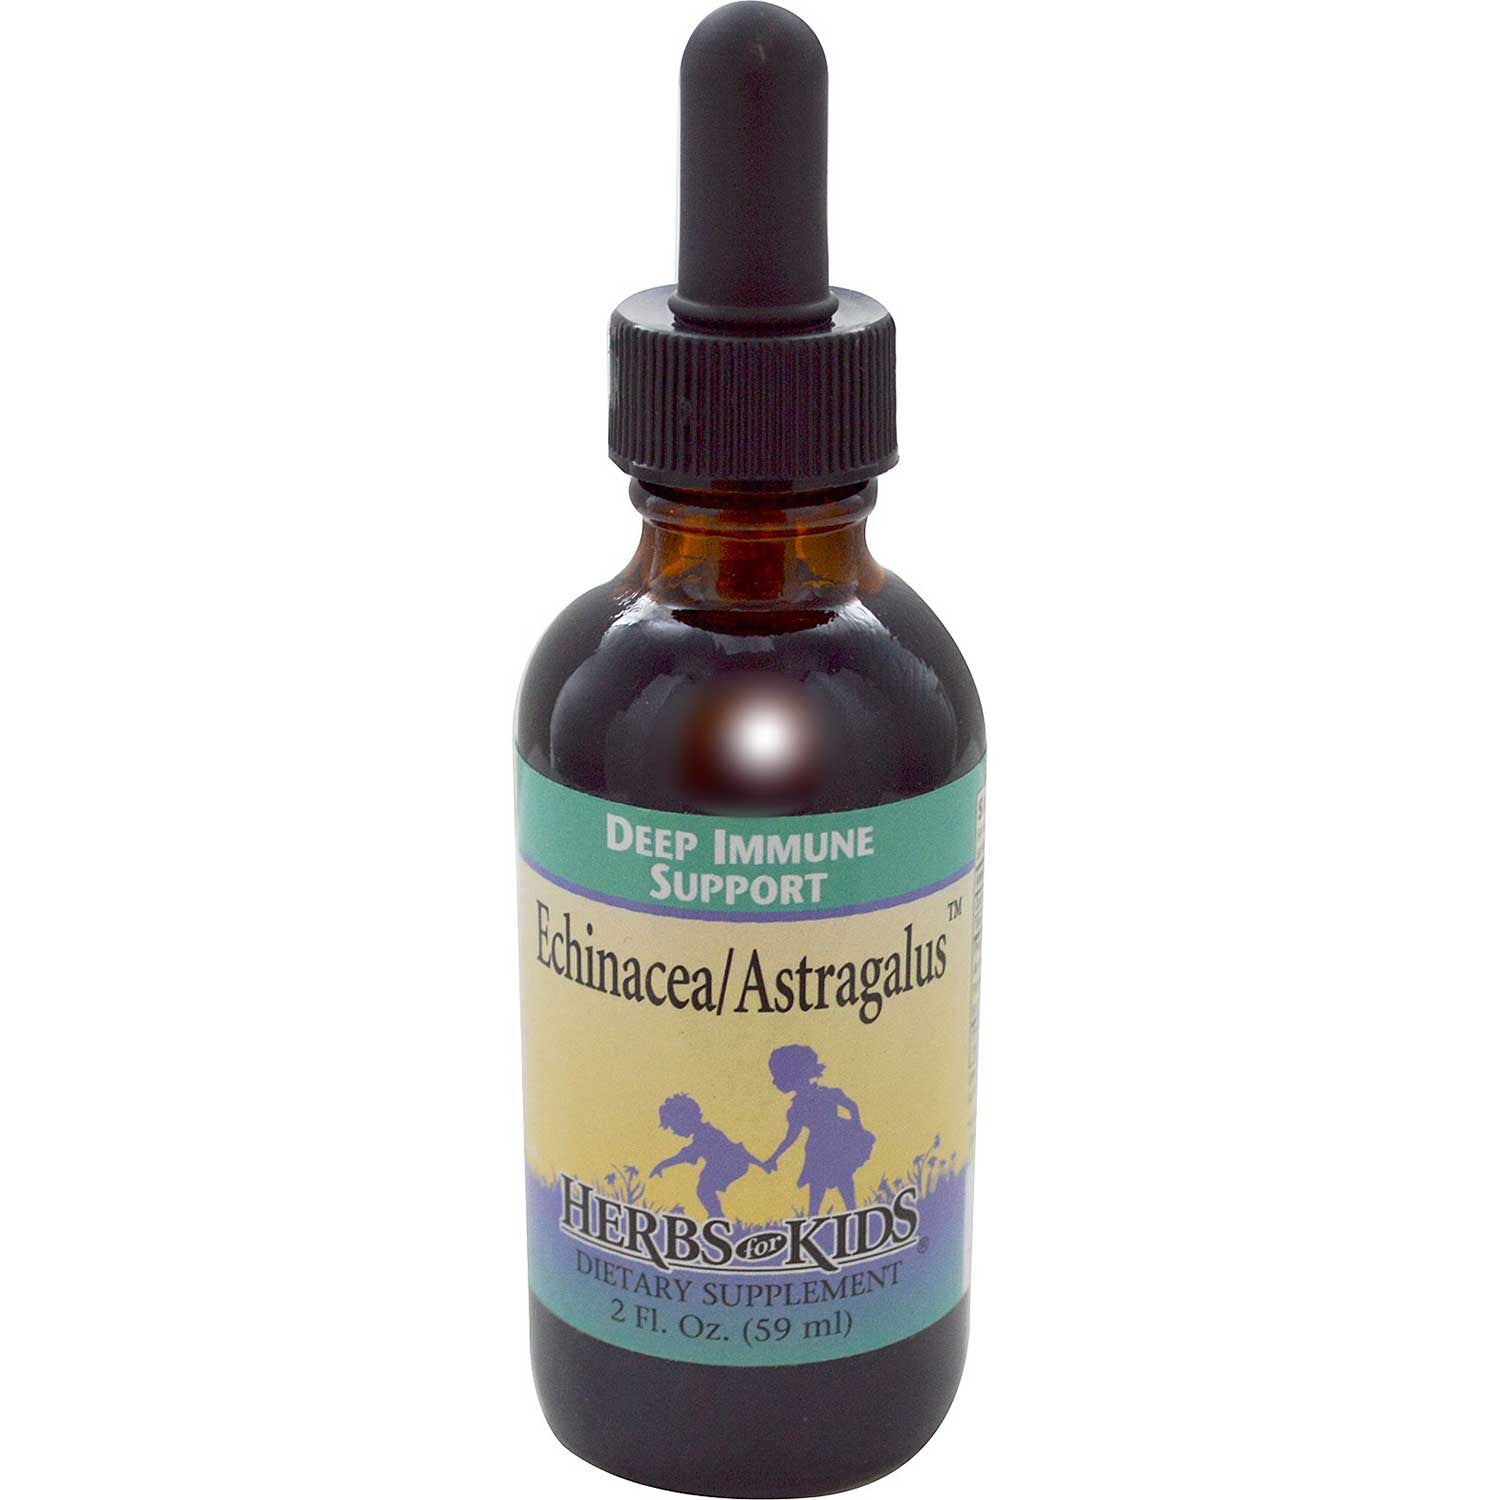 Herbs for Kids Echinacea/Astragalus, 59 ml.-NaturesWisdom